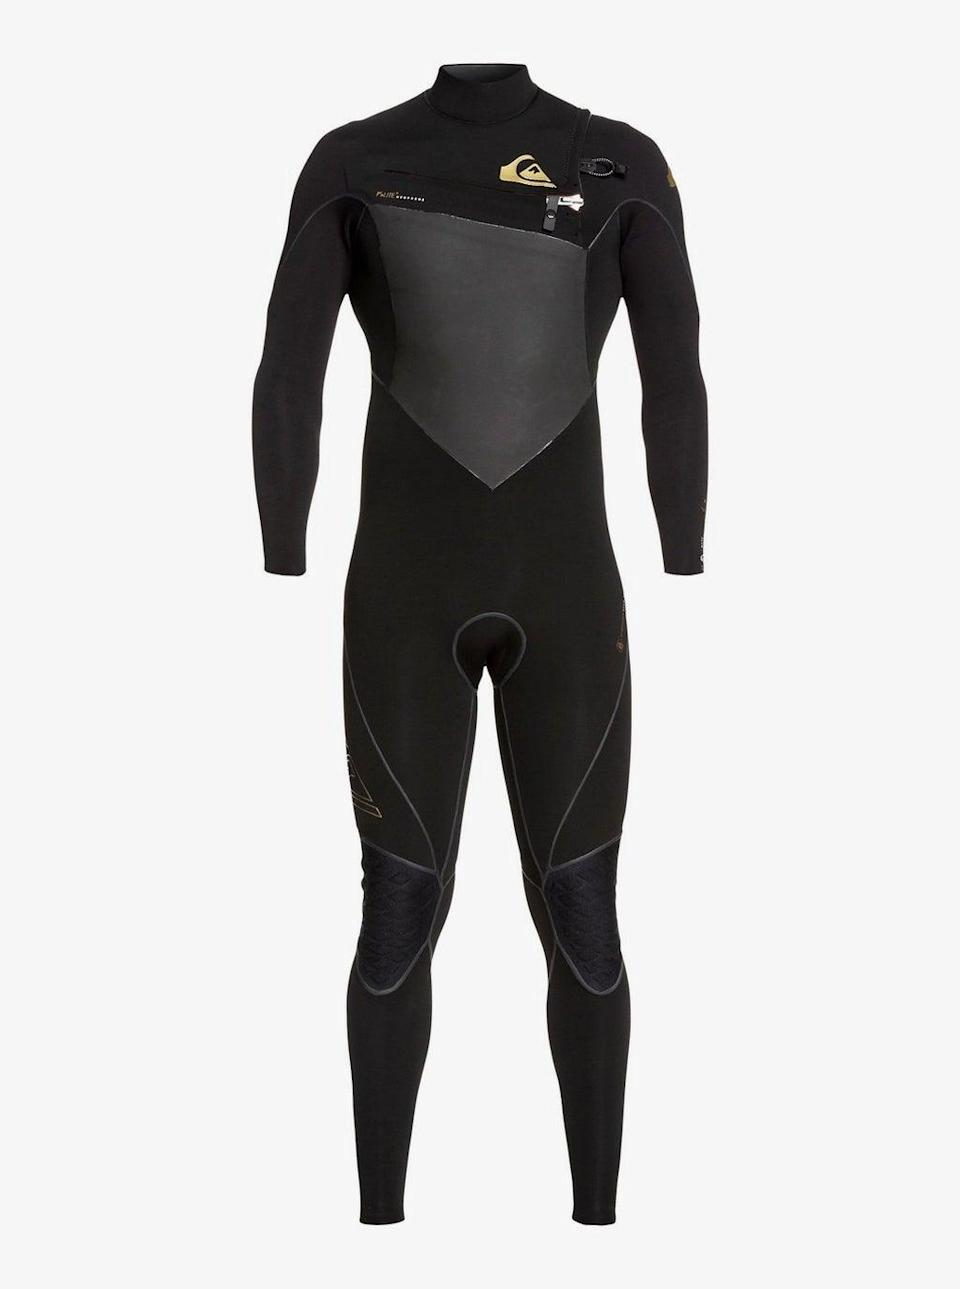 (Quiksilver Highline Wetsuit)